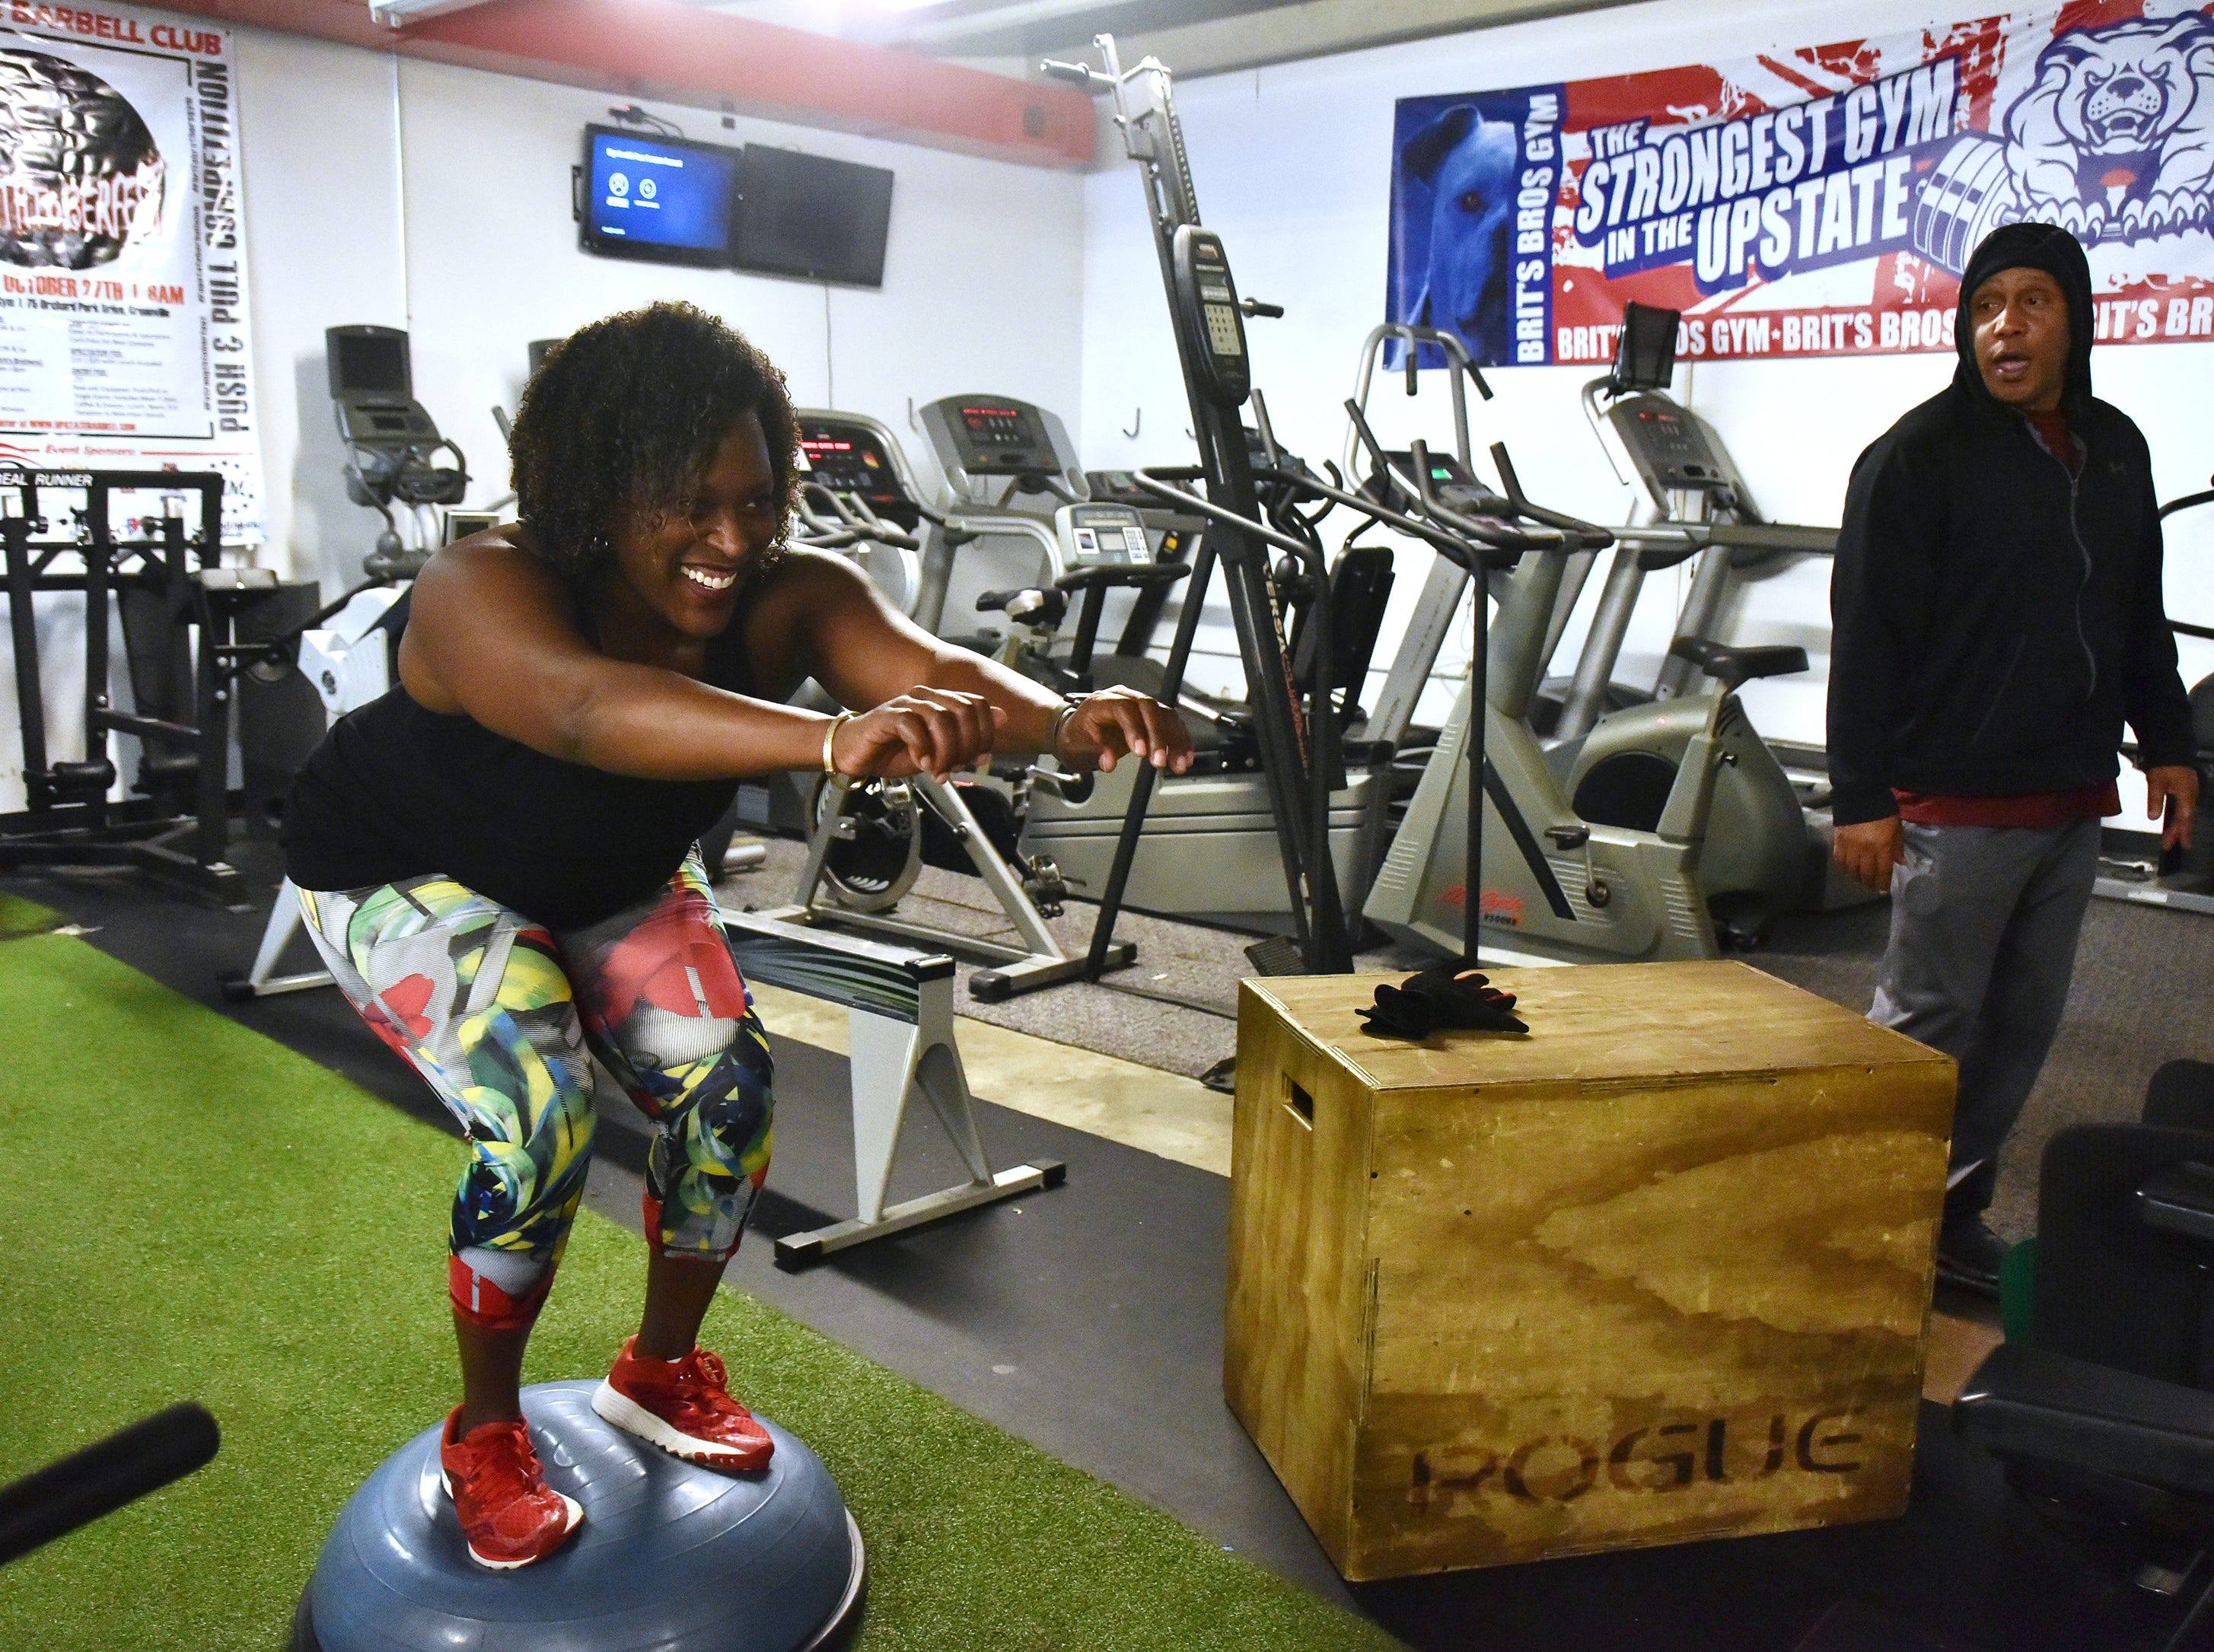 Jil Littlejohn works with strength coach Guy Mosley at Brit's Brothers Gym during a recent work out.